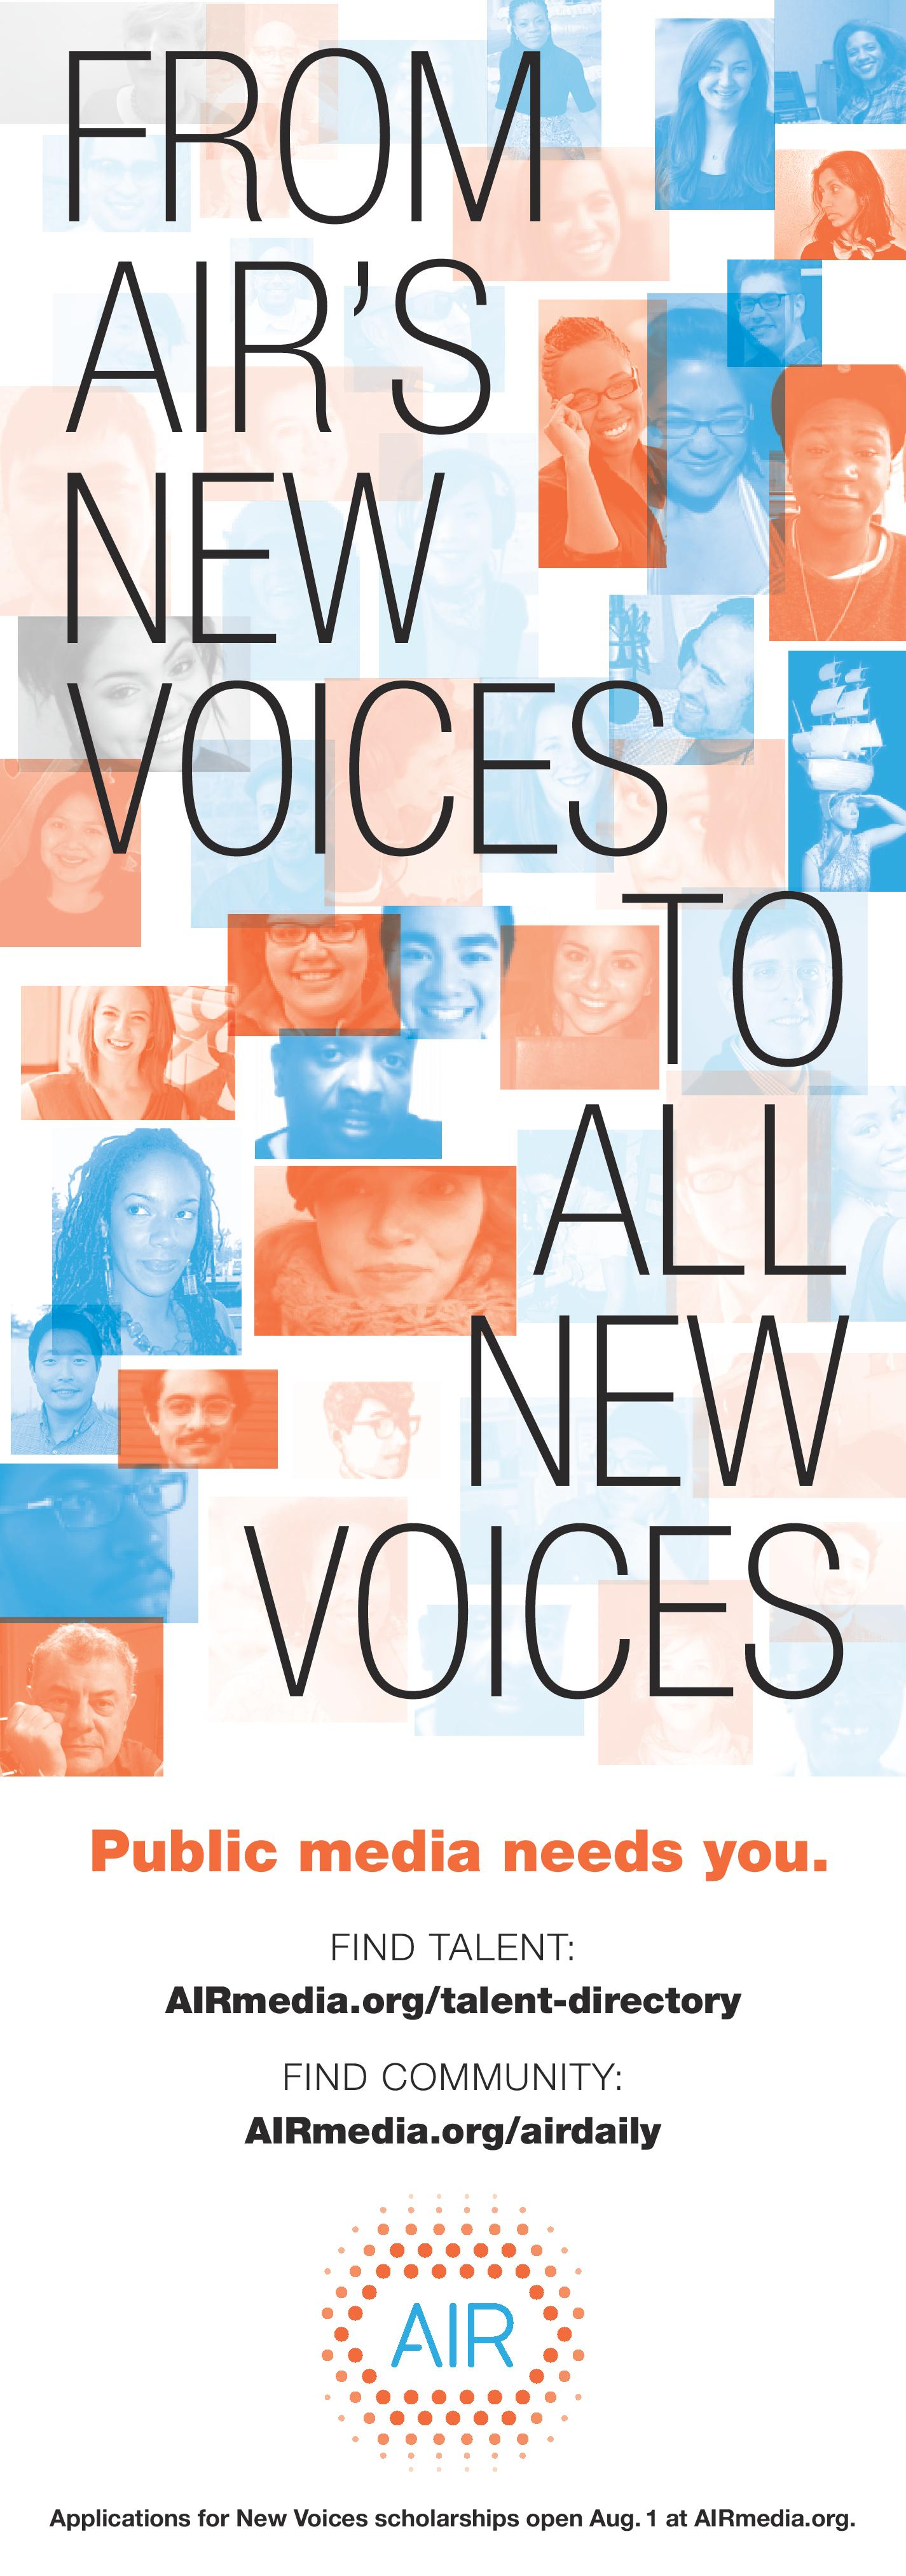 """An animated .gif of AIR's New Voices scholars that reads """"Dear New Voices, find mentors, find community, AIRmedia.org."""""""